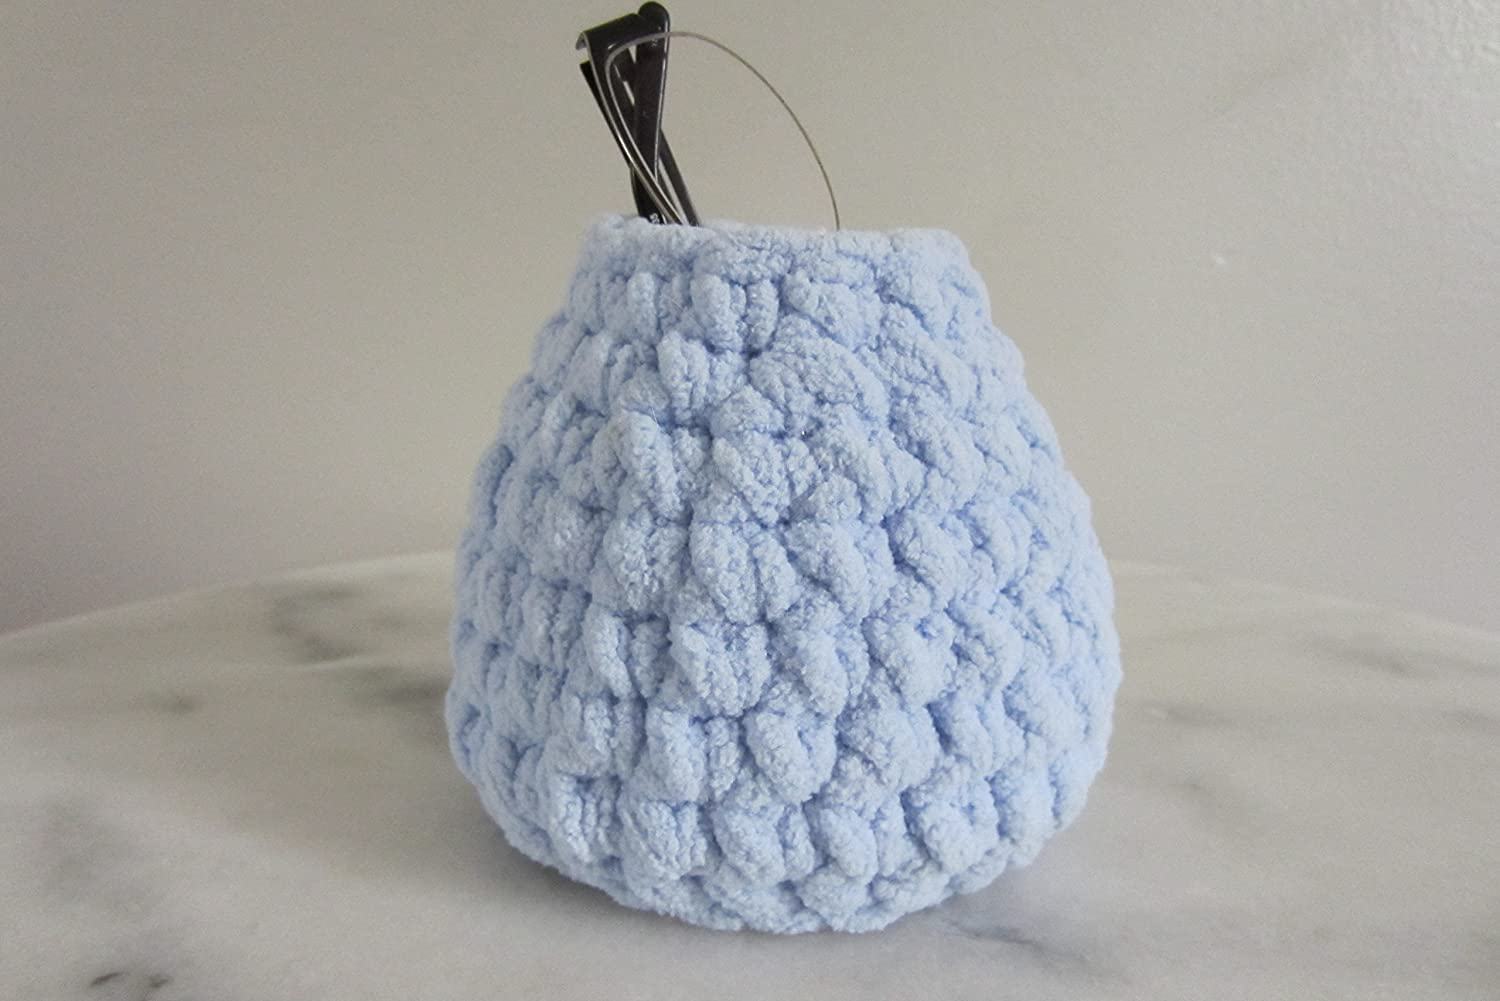 Eyeglass Stand, Upright Glasses Holder, Basket style Case, Pod Shaped - Many Colors to Choose from